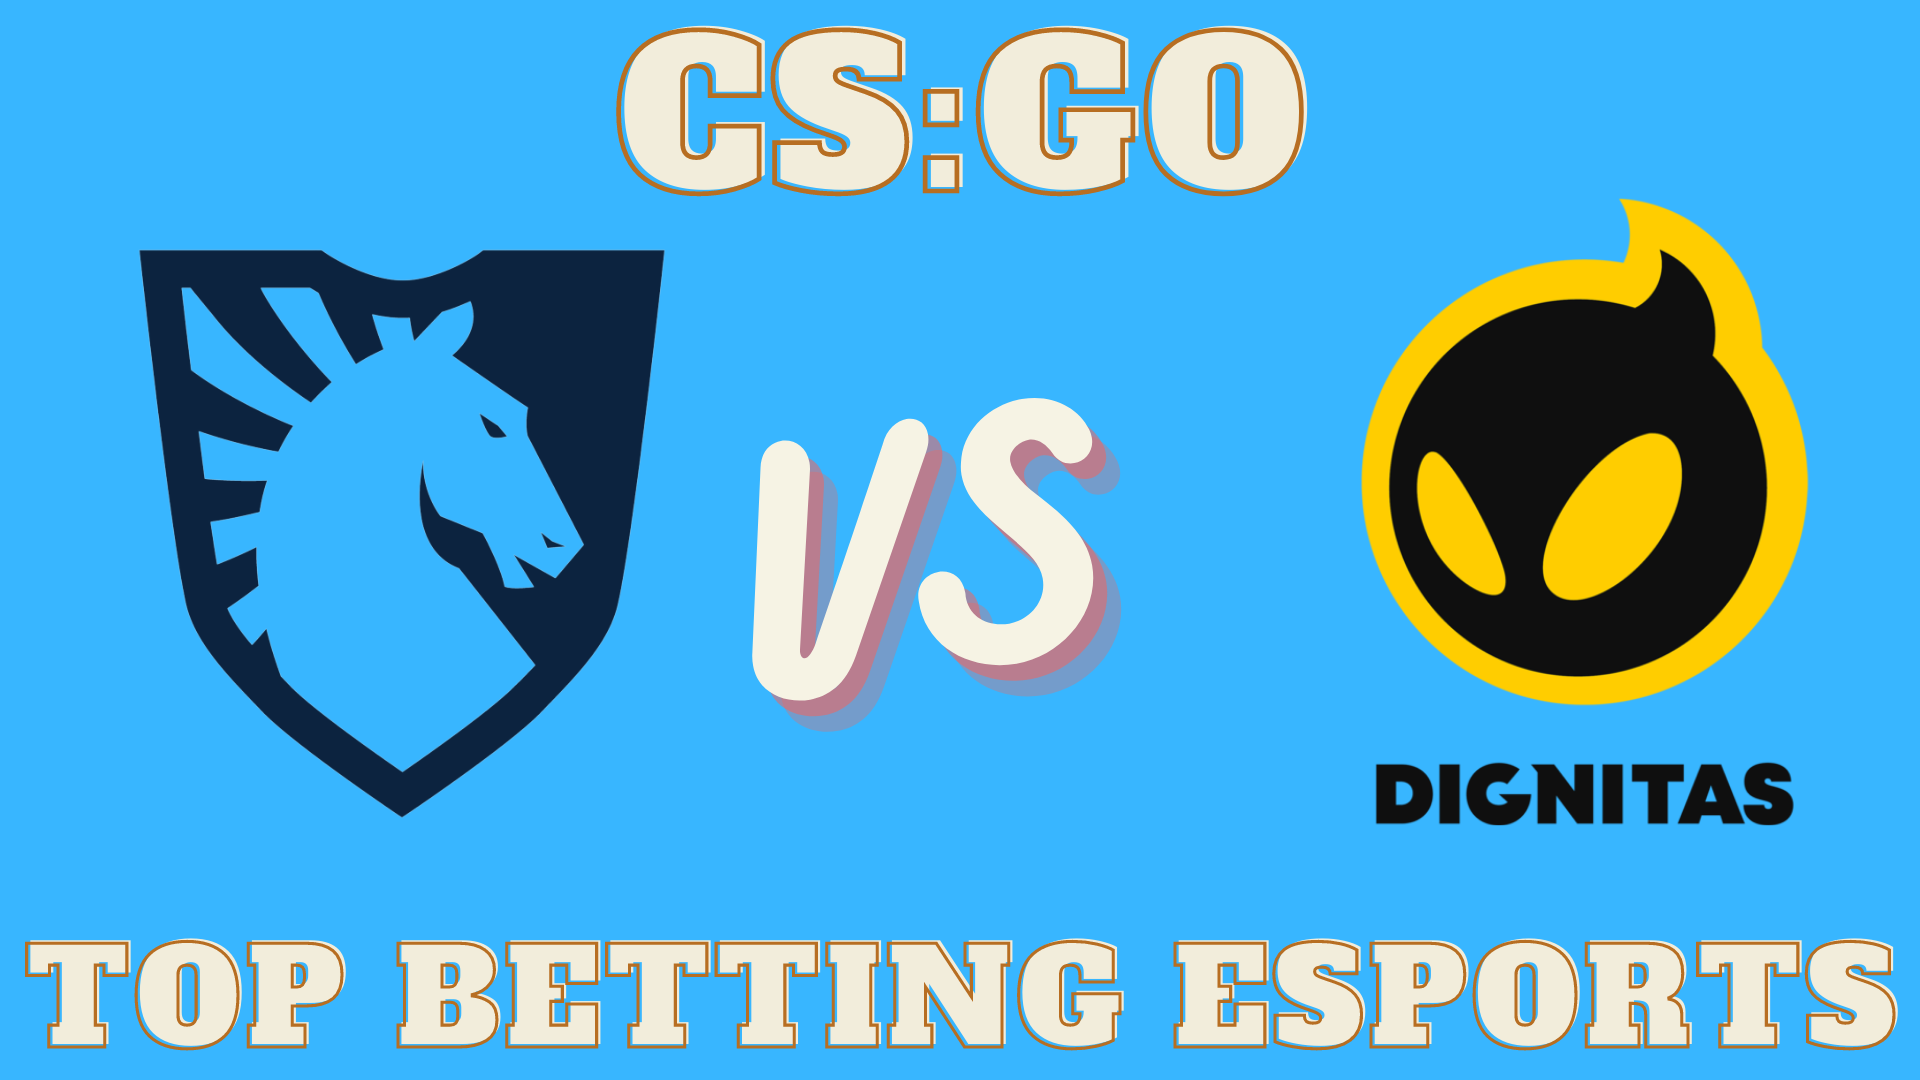 Team Liquid vs Dignitas Betting Predictions and Picks 04.13.2021